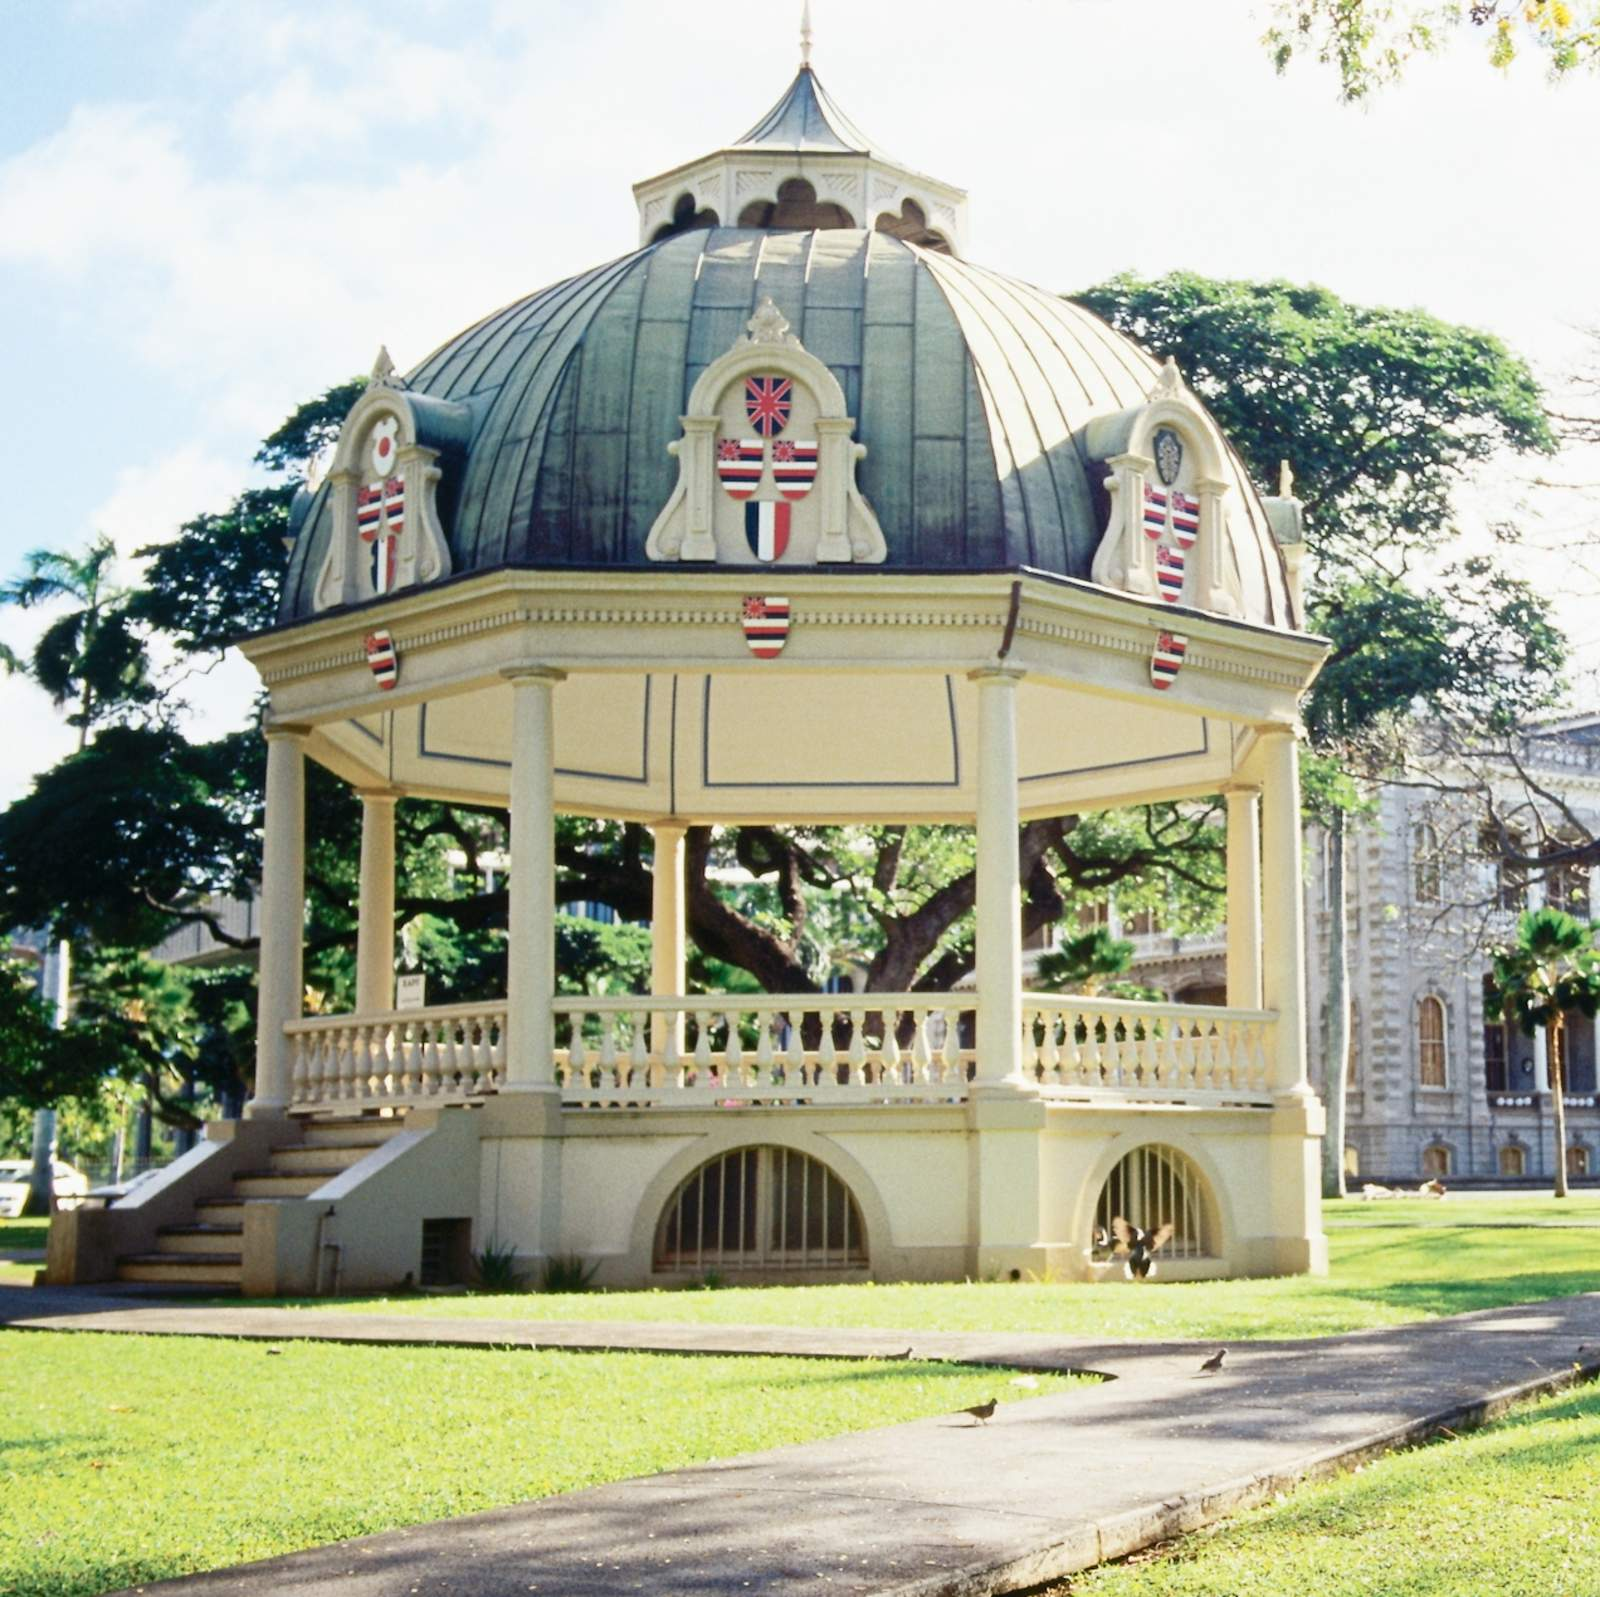 Royal Bandstand am Iolani Palace Grounds